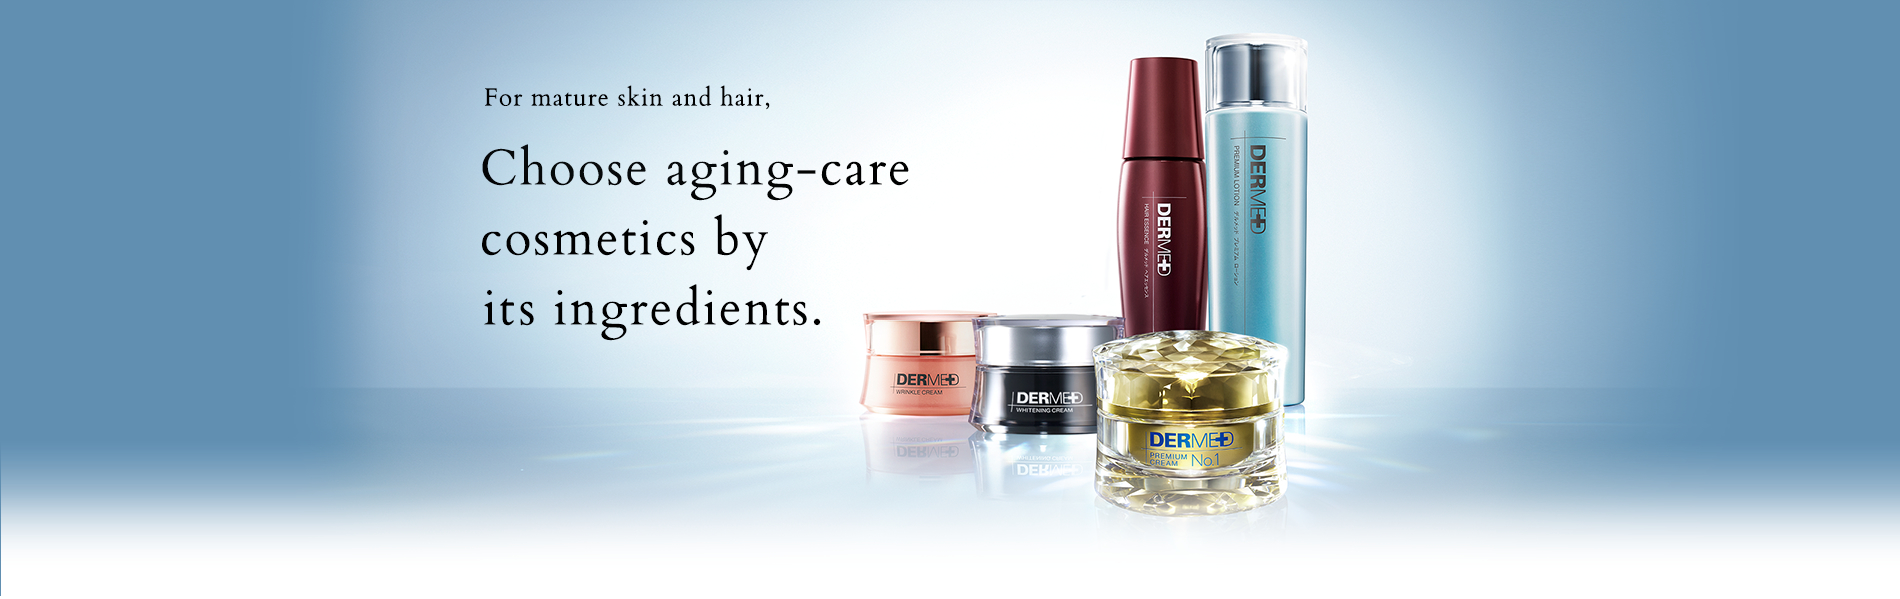 For mature skin and hair, Choose aging-care cosmetics by its ingredients.